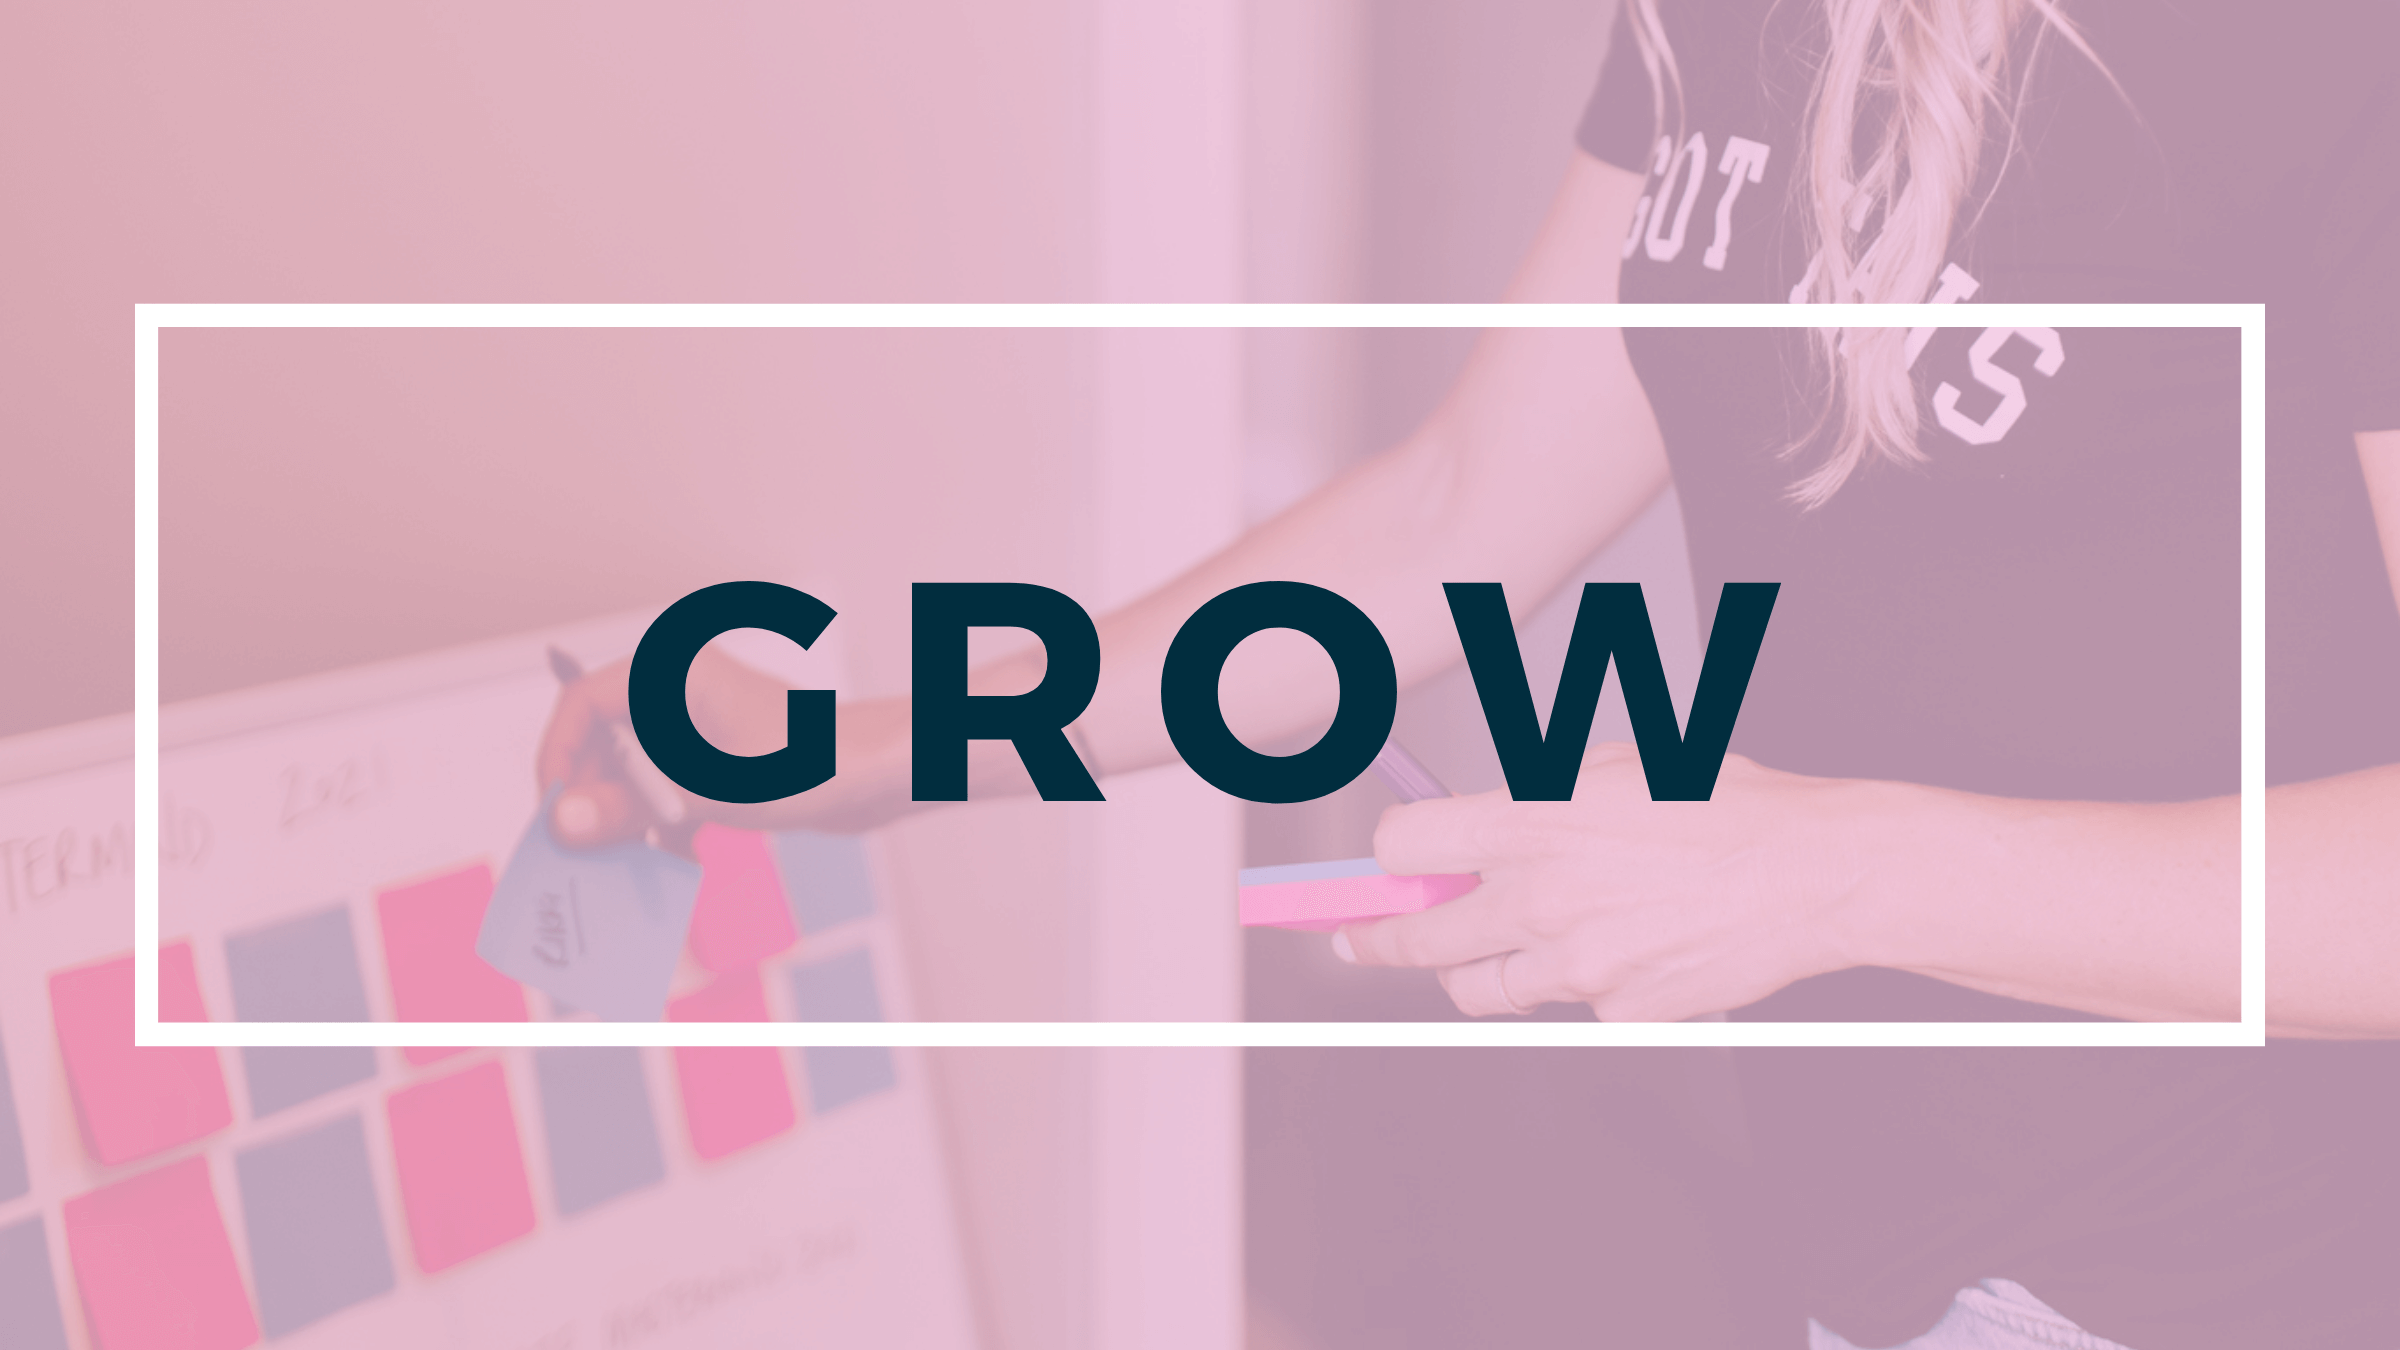 Grow with your online network